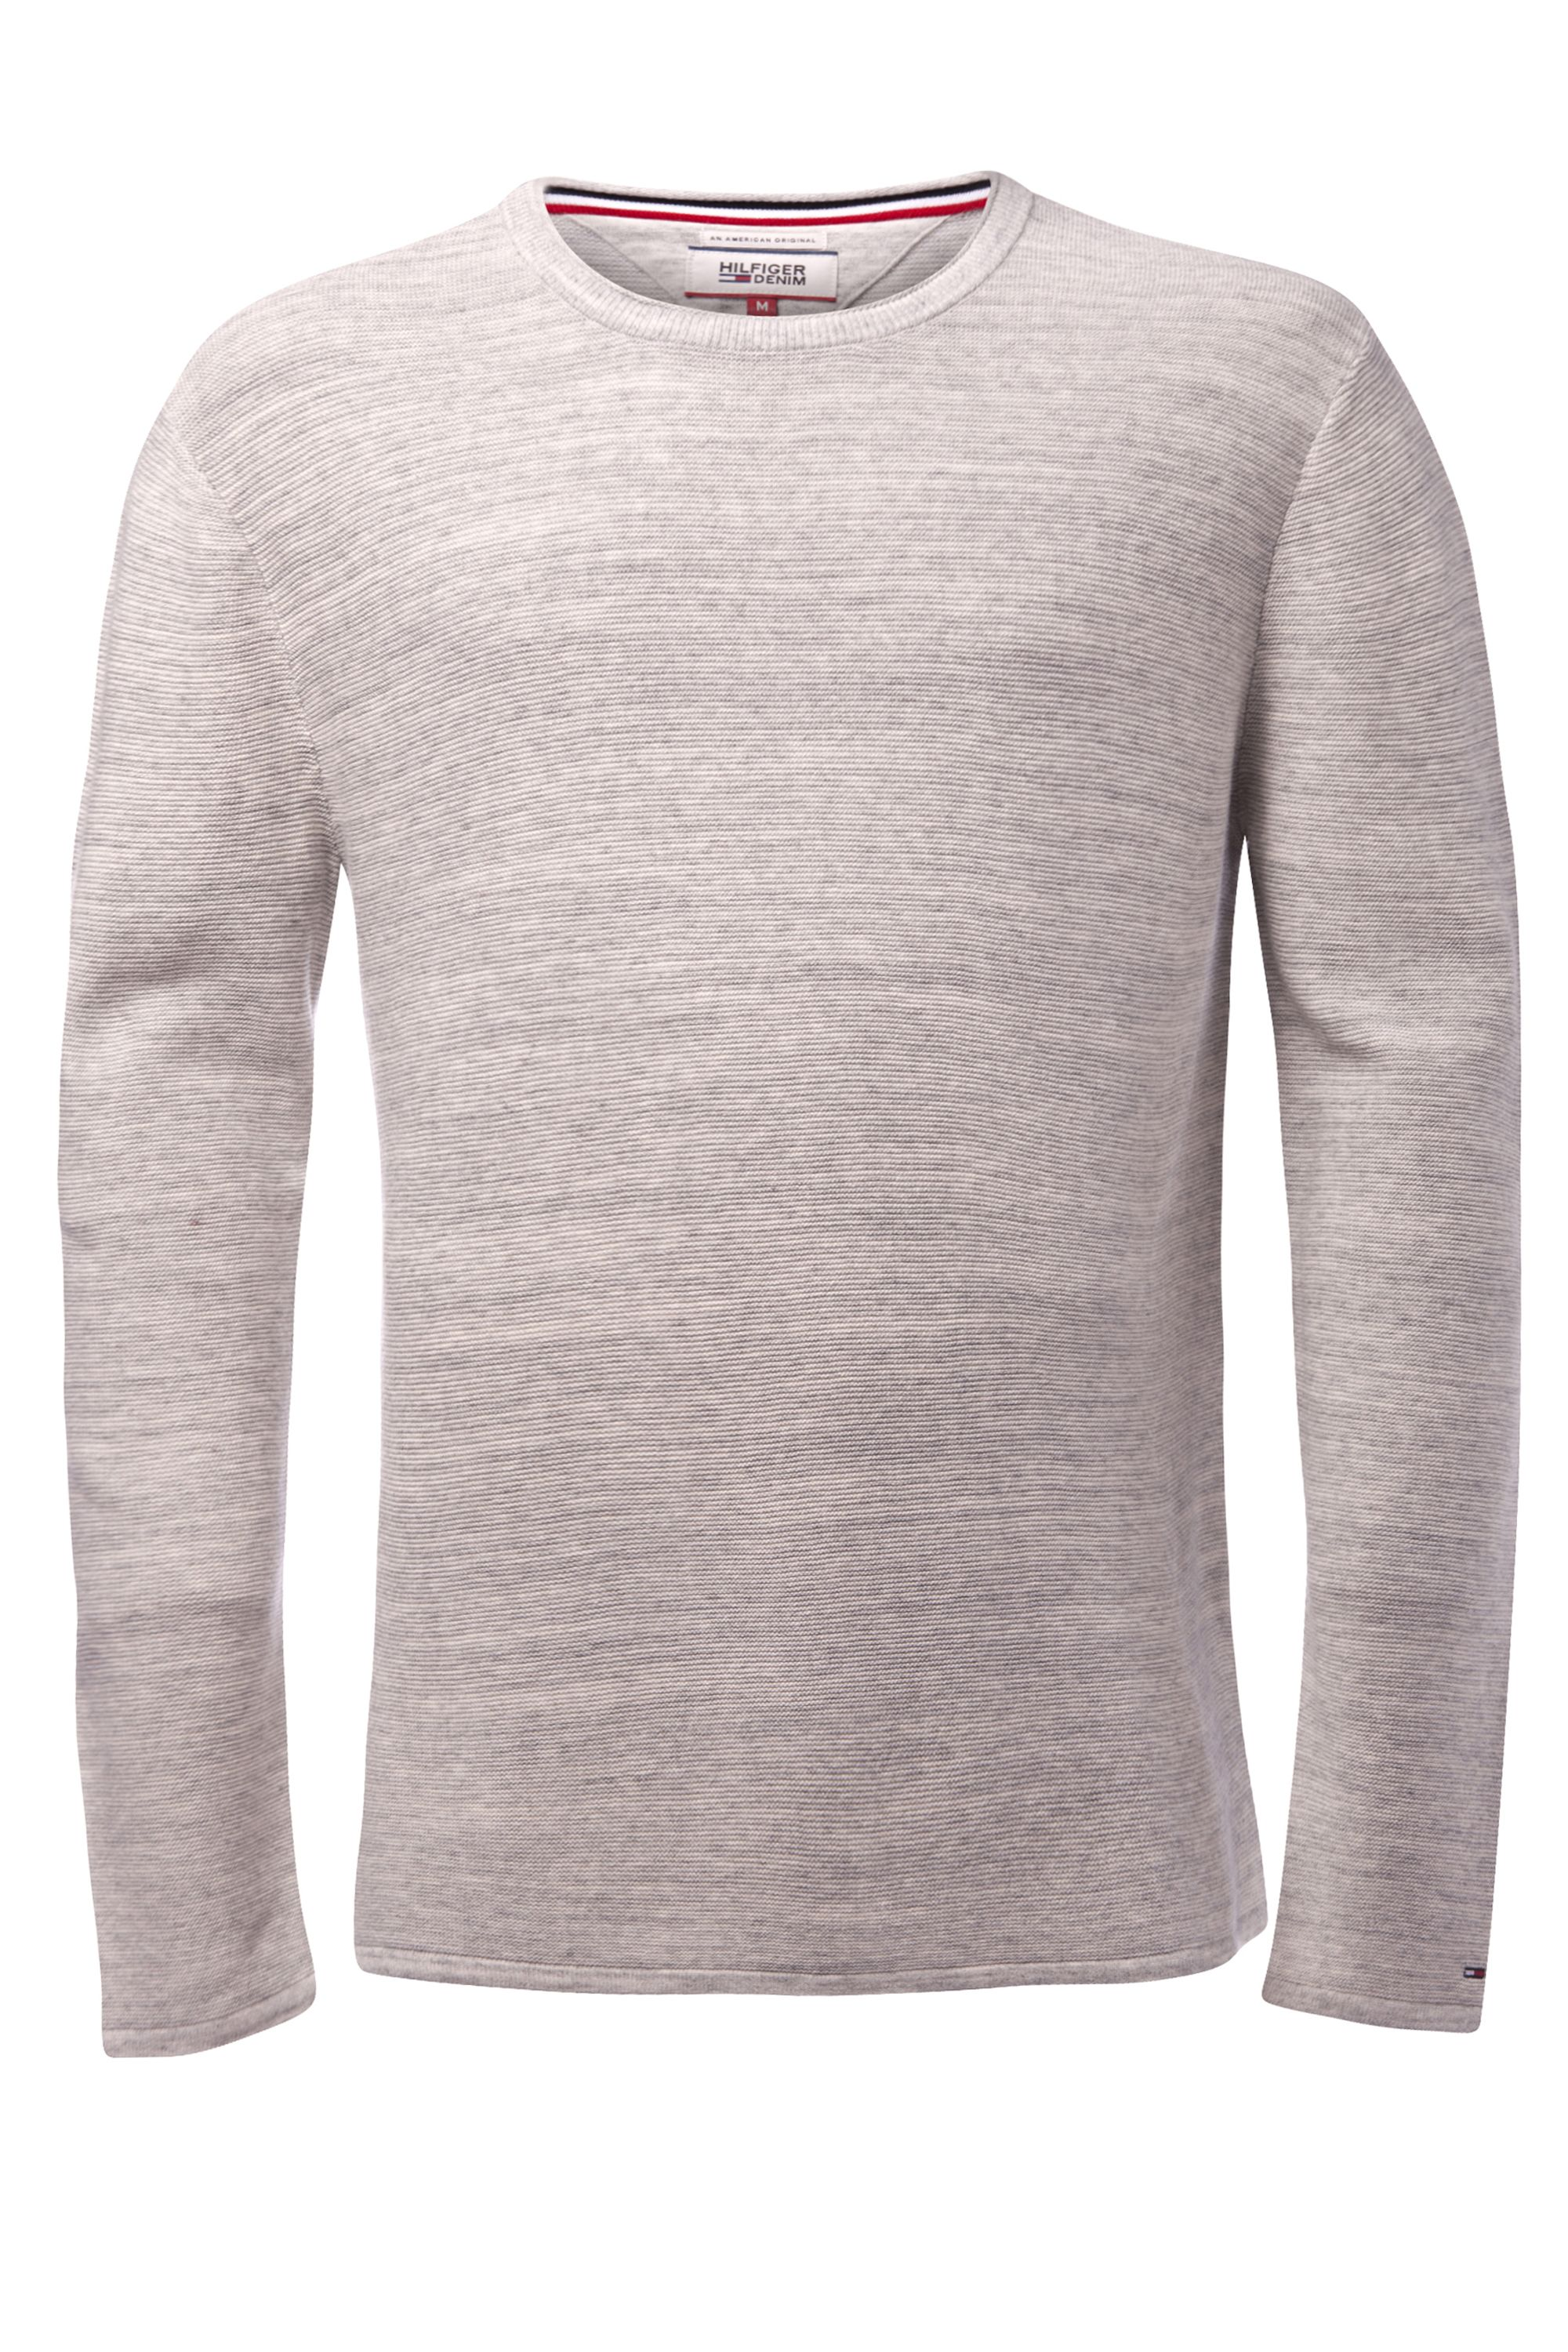 Men's Tommy Hilfiger space dye sweater, Light Grey